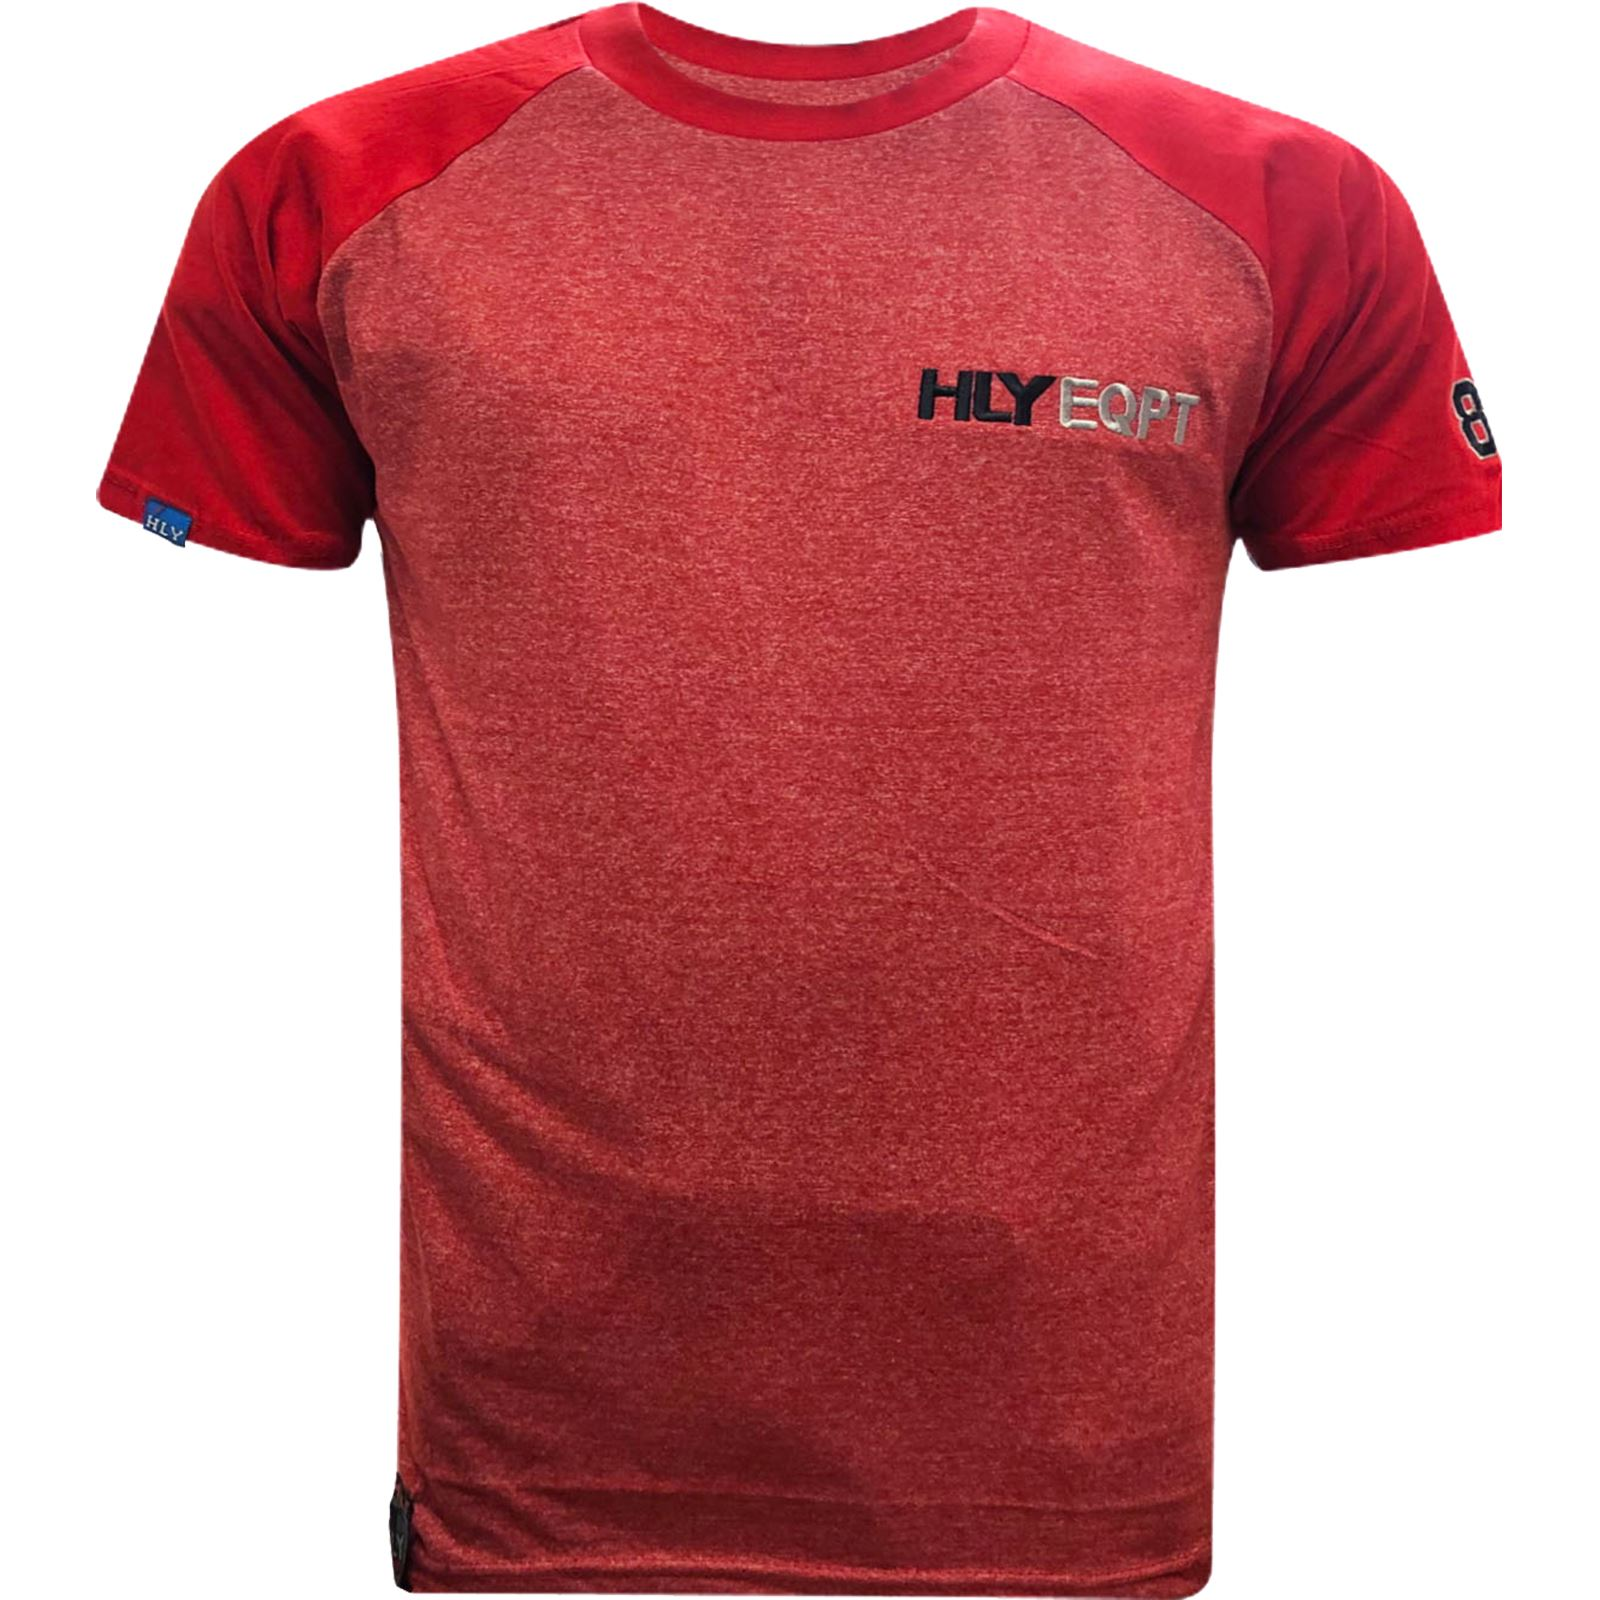 Mens-HLY-EQPT-Printed-T-Shirt-100-Cotton-Gym-Athletic-Training-Tee-Top-Summer thumbnail 47